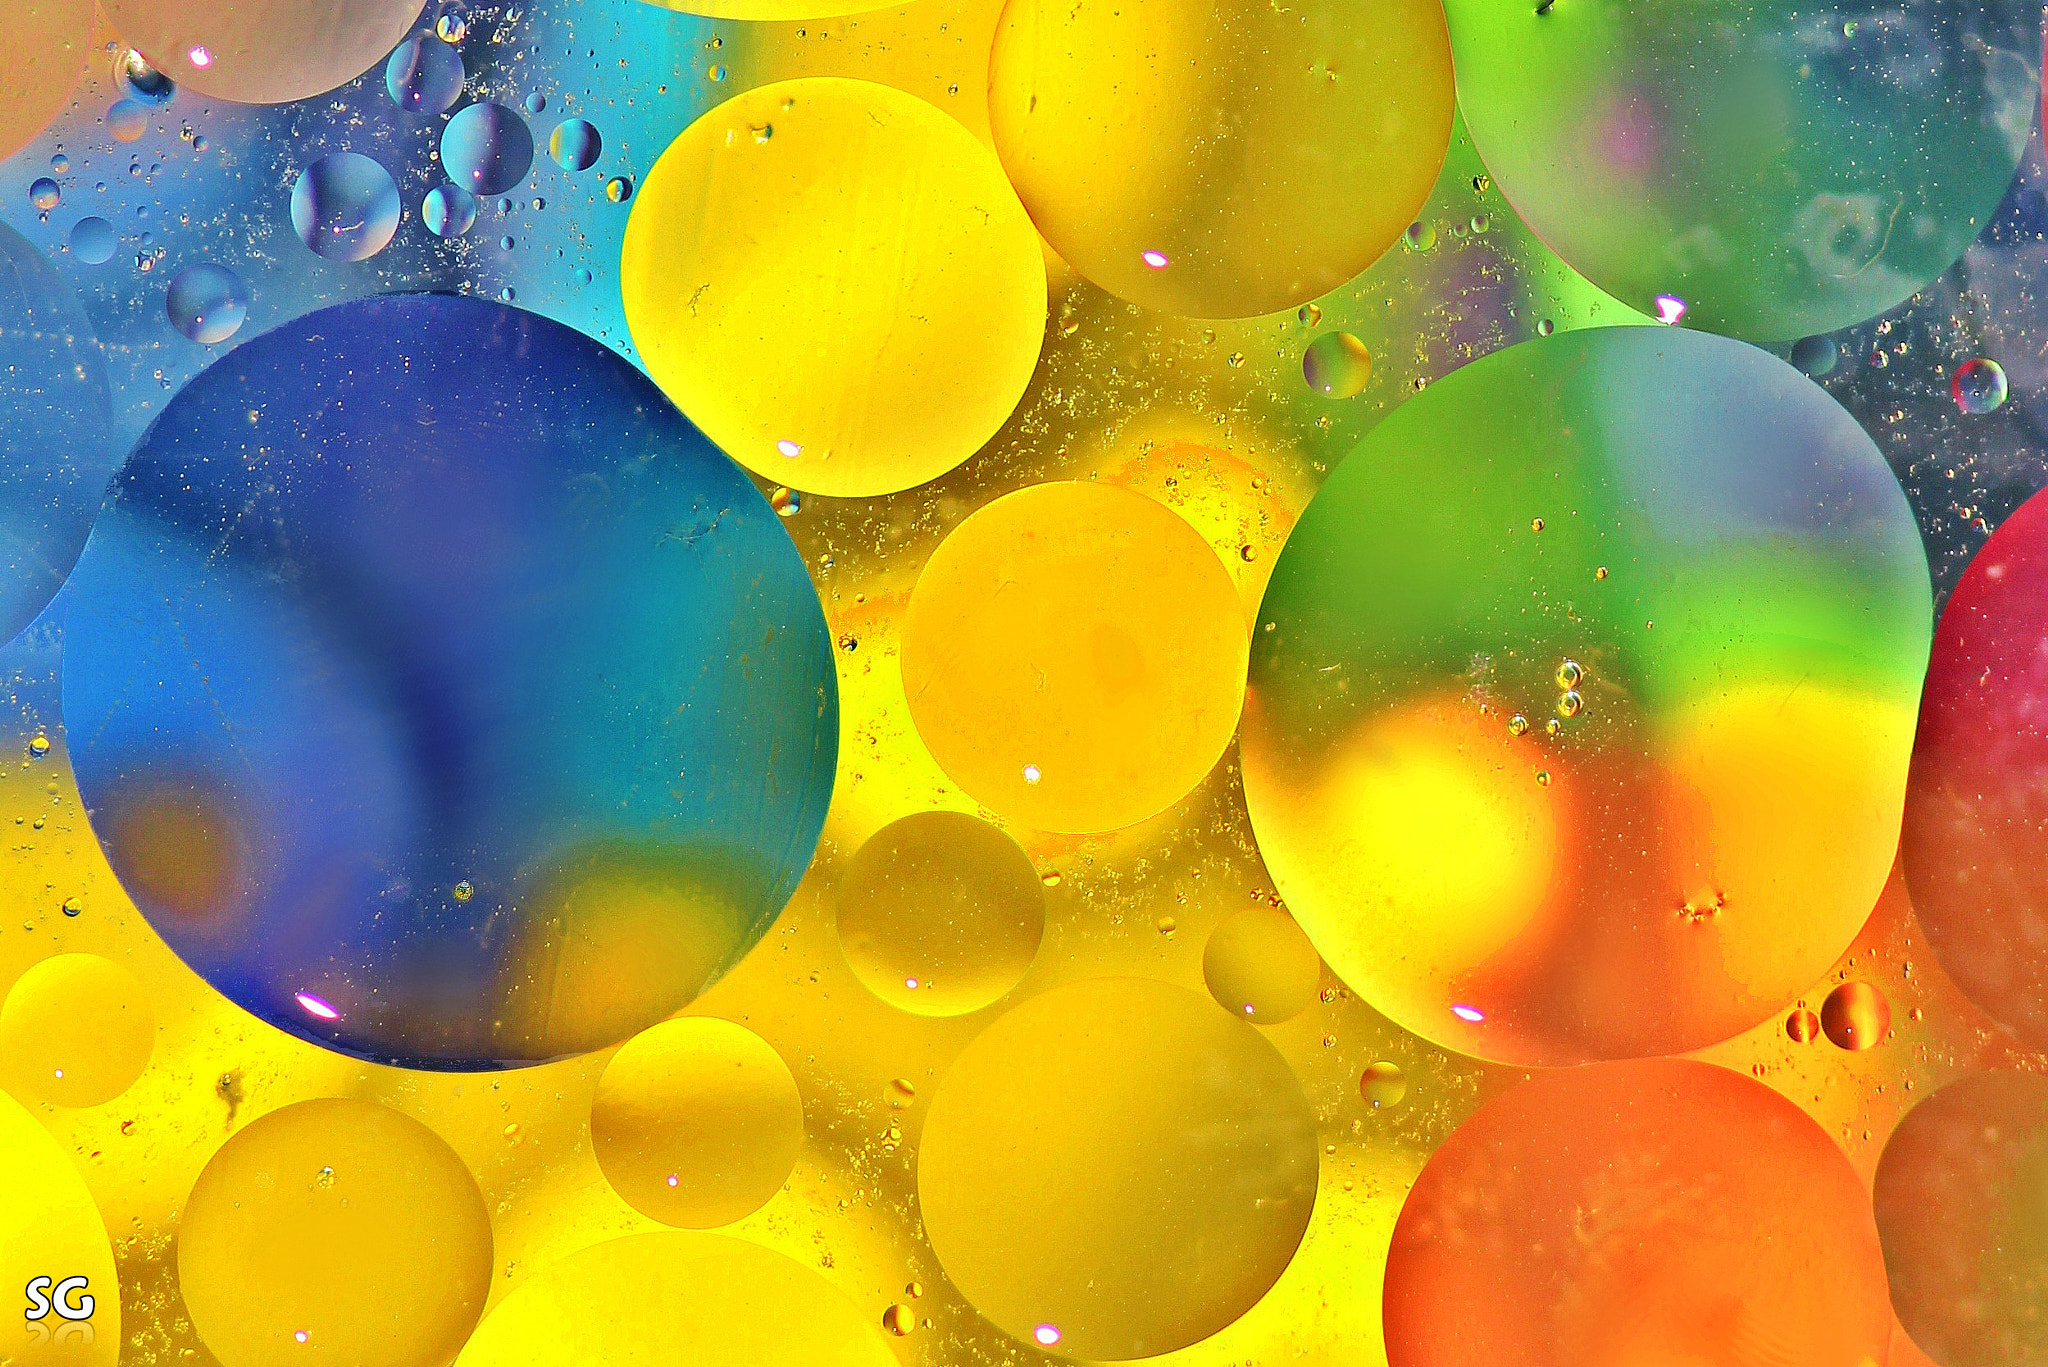 Photograph Life in Color by Shai  Getzoff on 500px